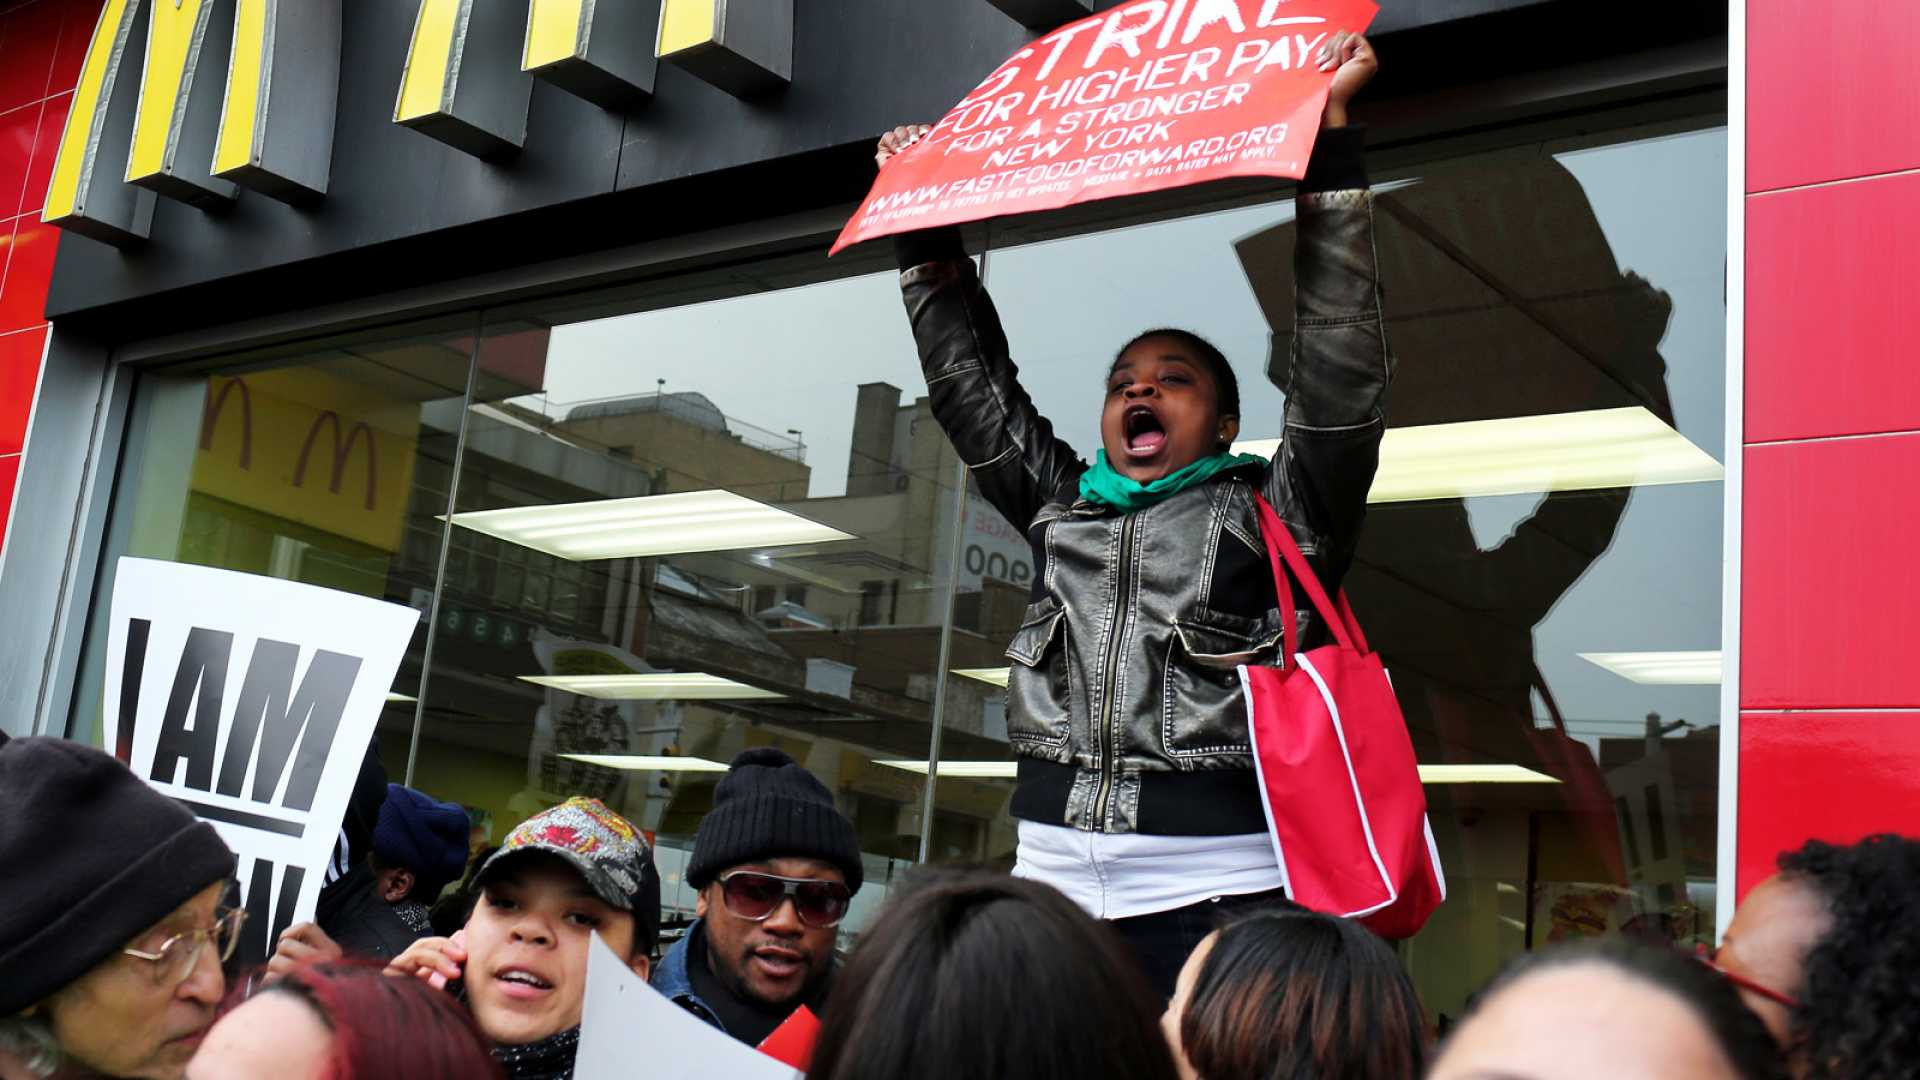 Fast Food Companies Are Screwed, but Not by Striking Workers